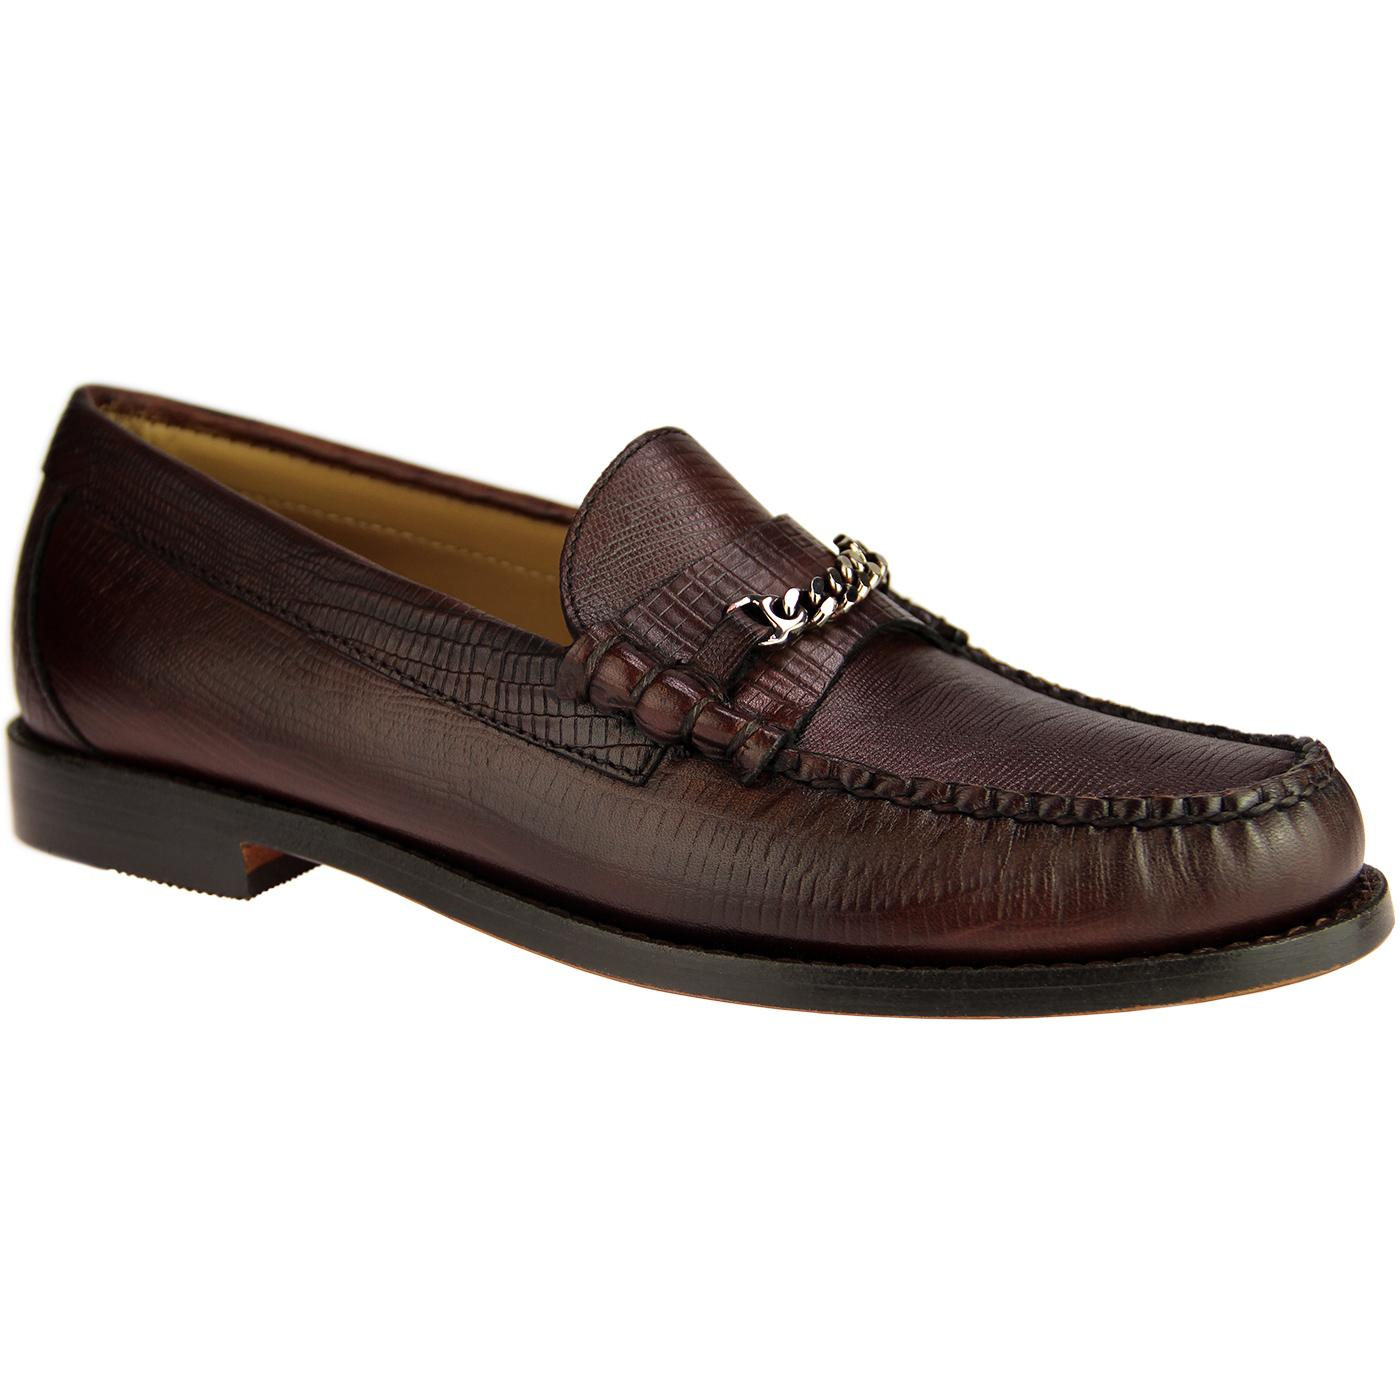 Lincoln Lizard BASS WEEJUNS Mod Snaffle Loafers C